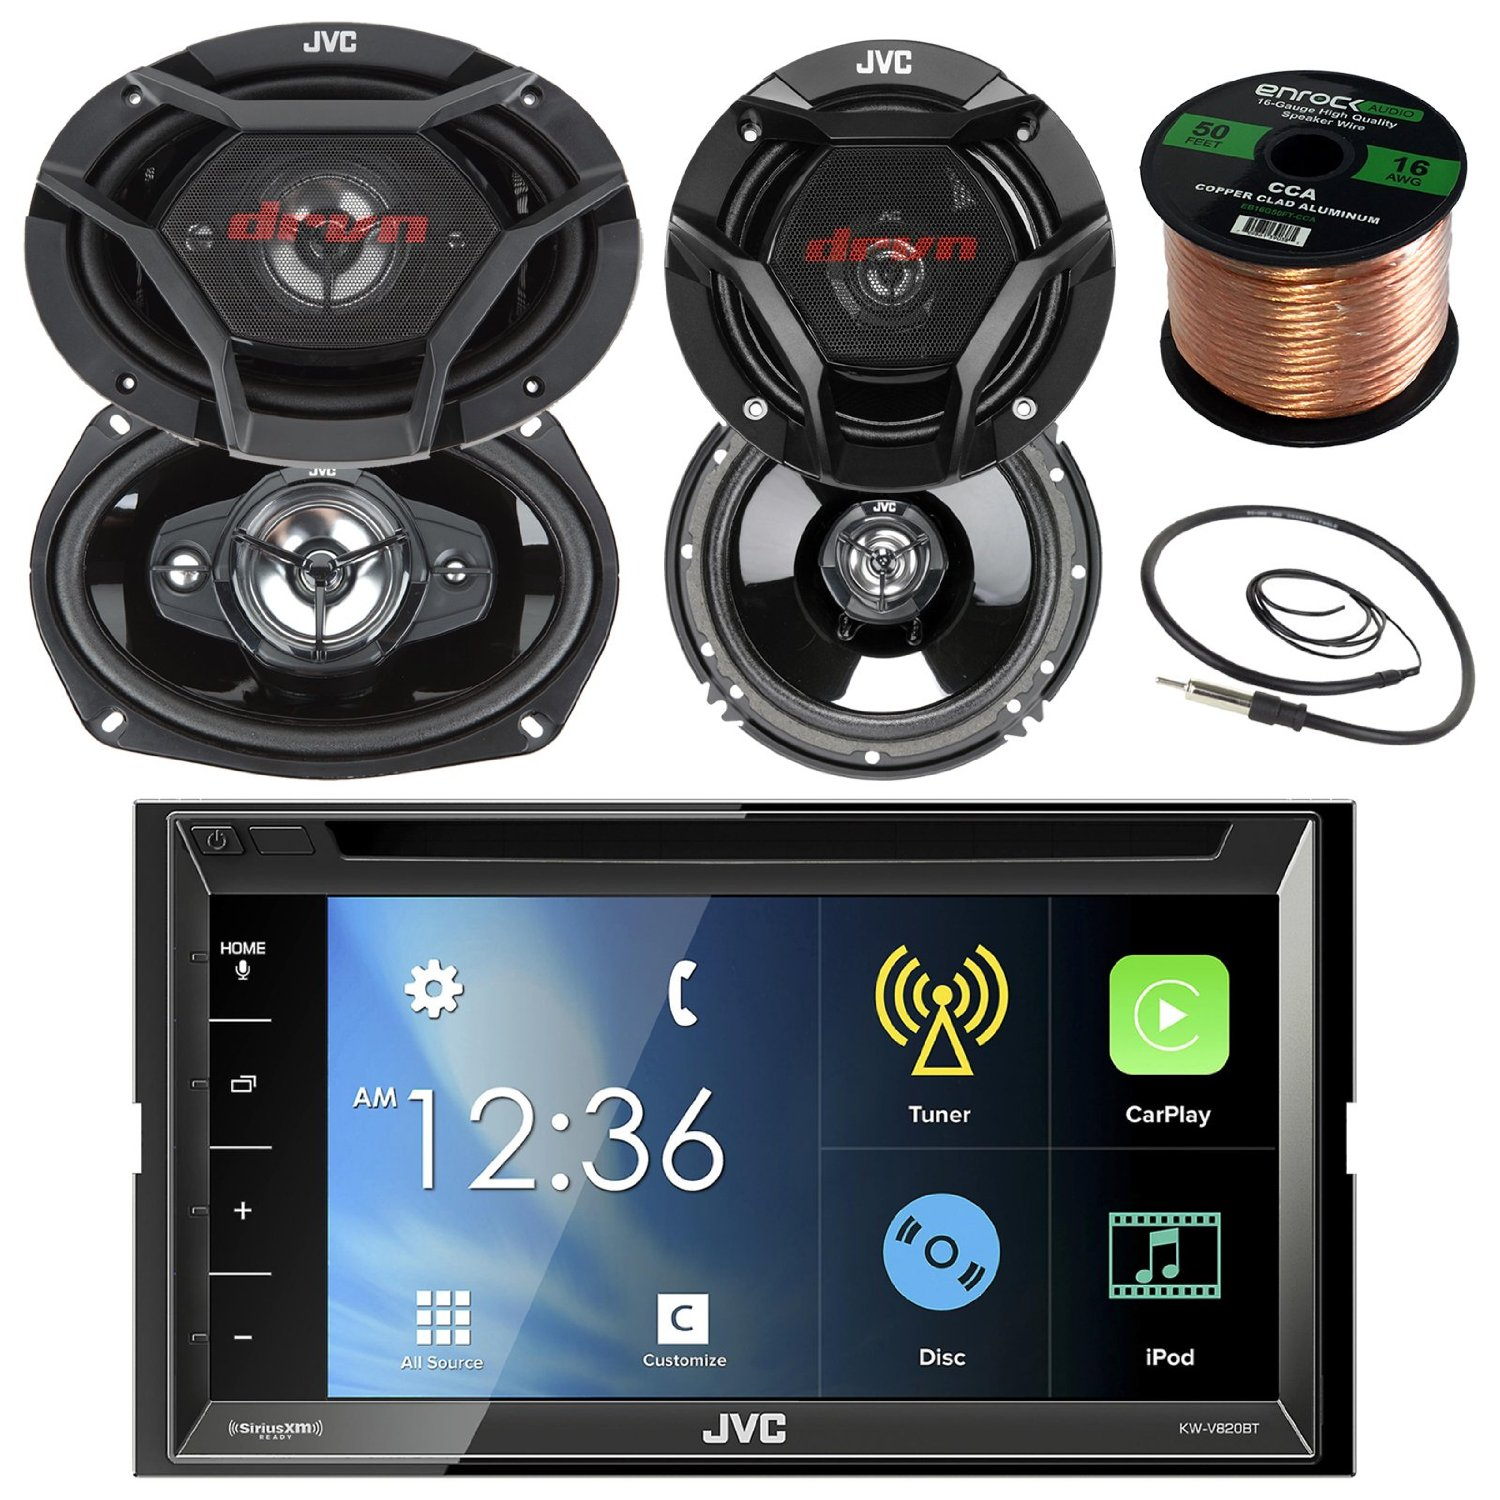 "JVC KWV820BT 6.8"" Touch Screen Car CD/DVD Bluetooth Receiver Bundle Combo With 2x Dual 6.5"" 2-Way And 2x 6x9"" Inch 4-Way Audio Coaxial Speakers + Enrock 22"" AM/FM Antenna + 50 Ft 16 Guage Speaker Wire"